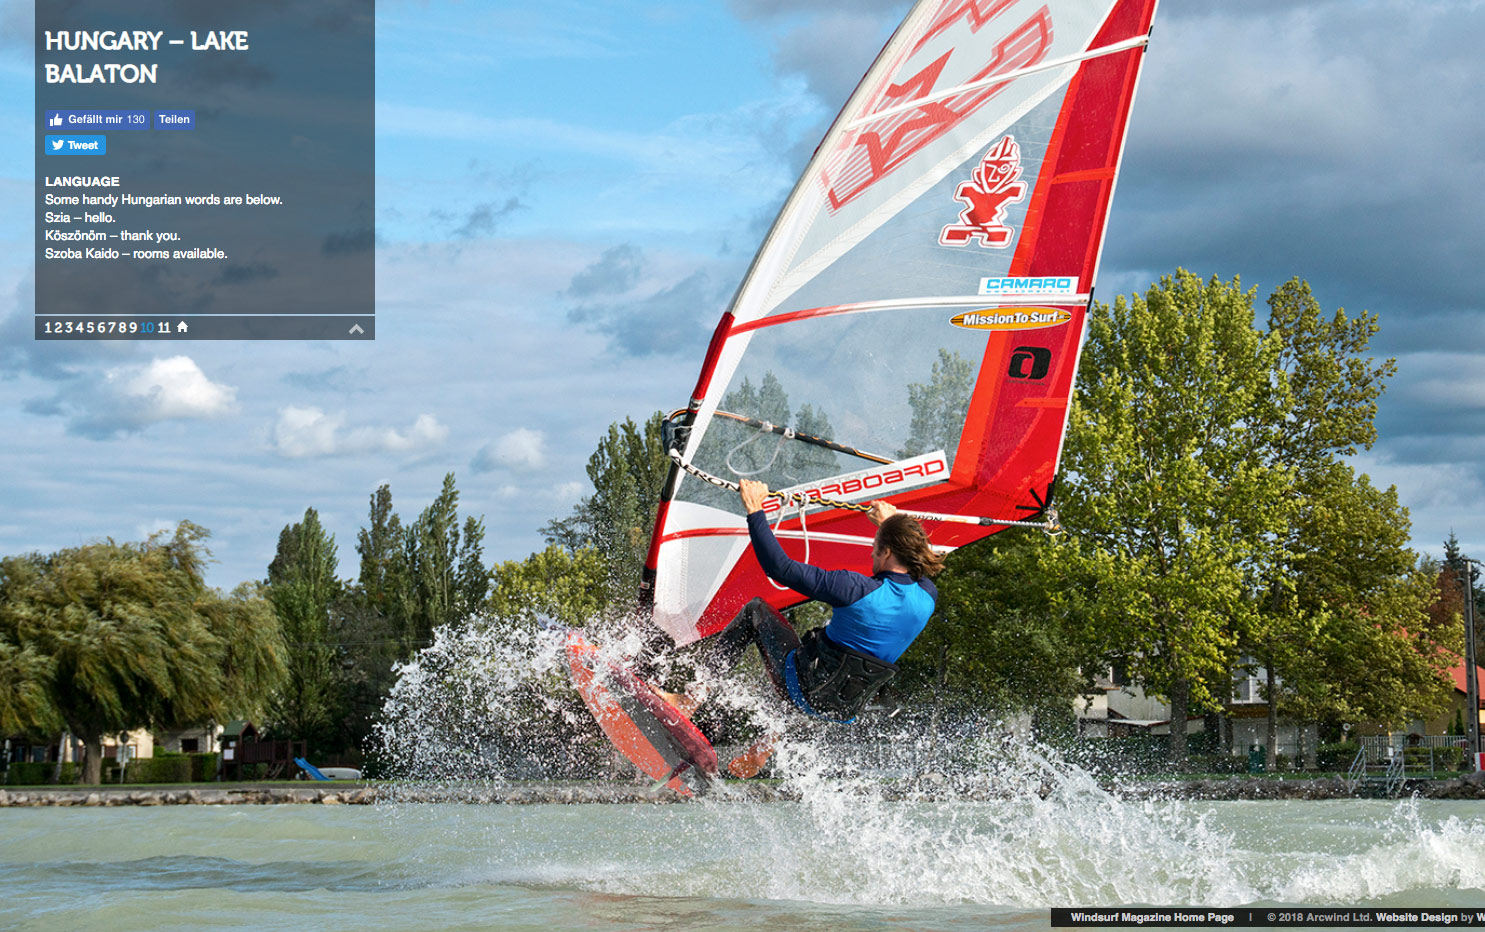 Willy Skipper action in the Windsurf magazine online page 10 Lake Balaton 2018